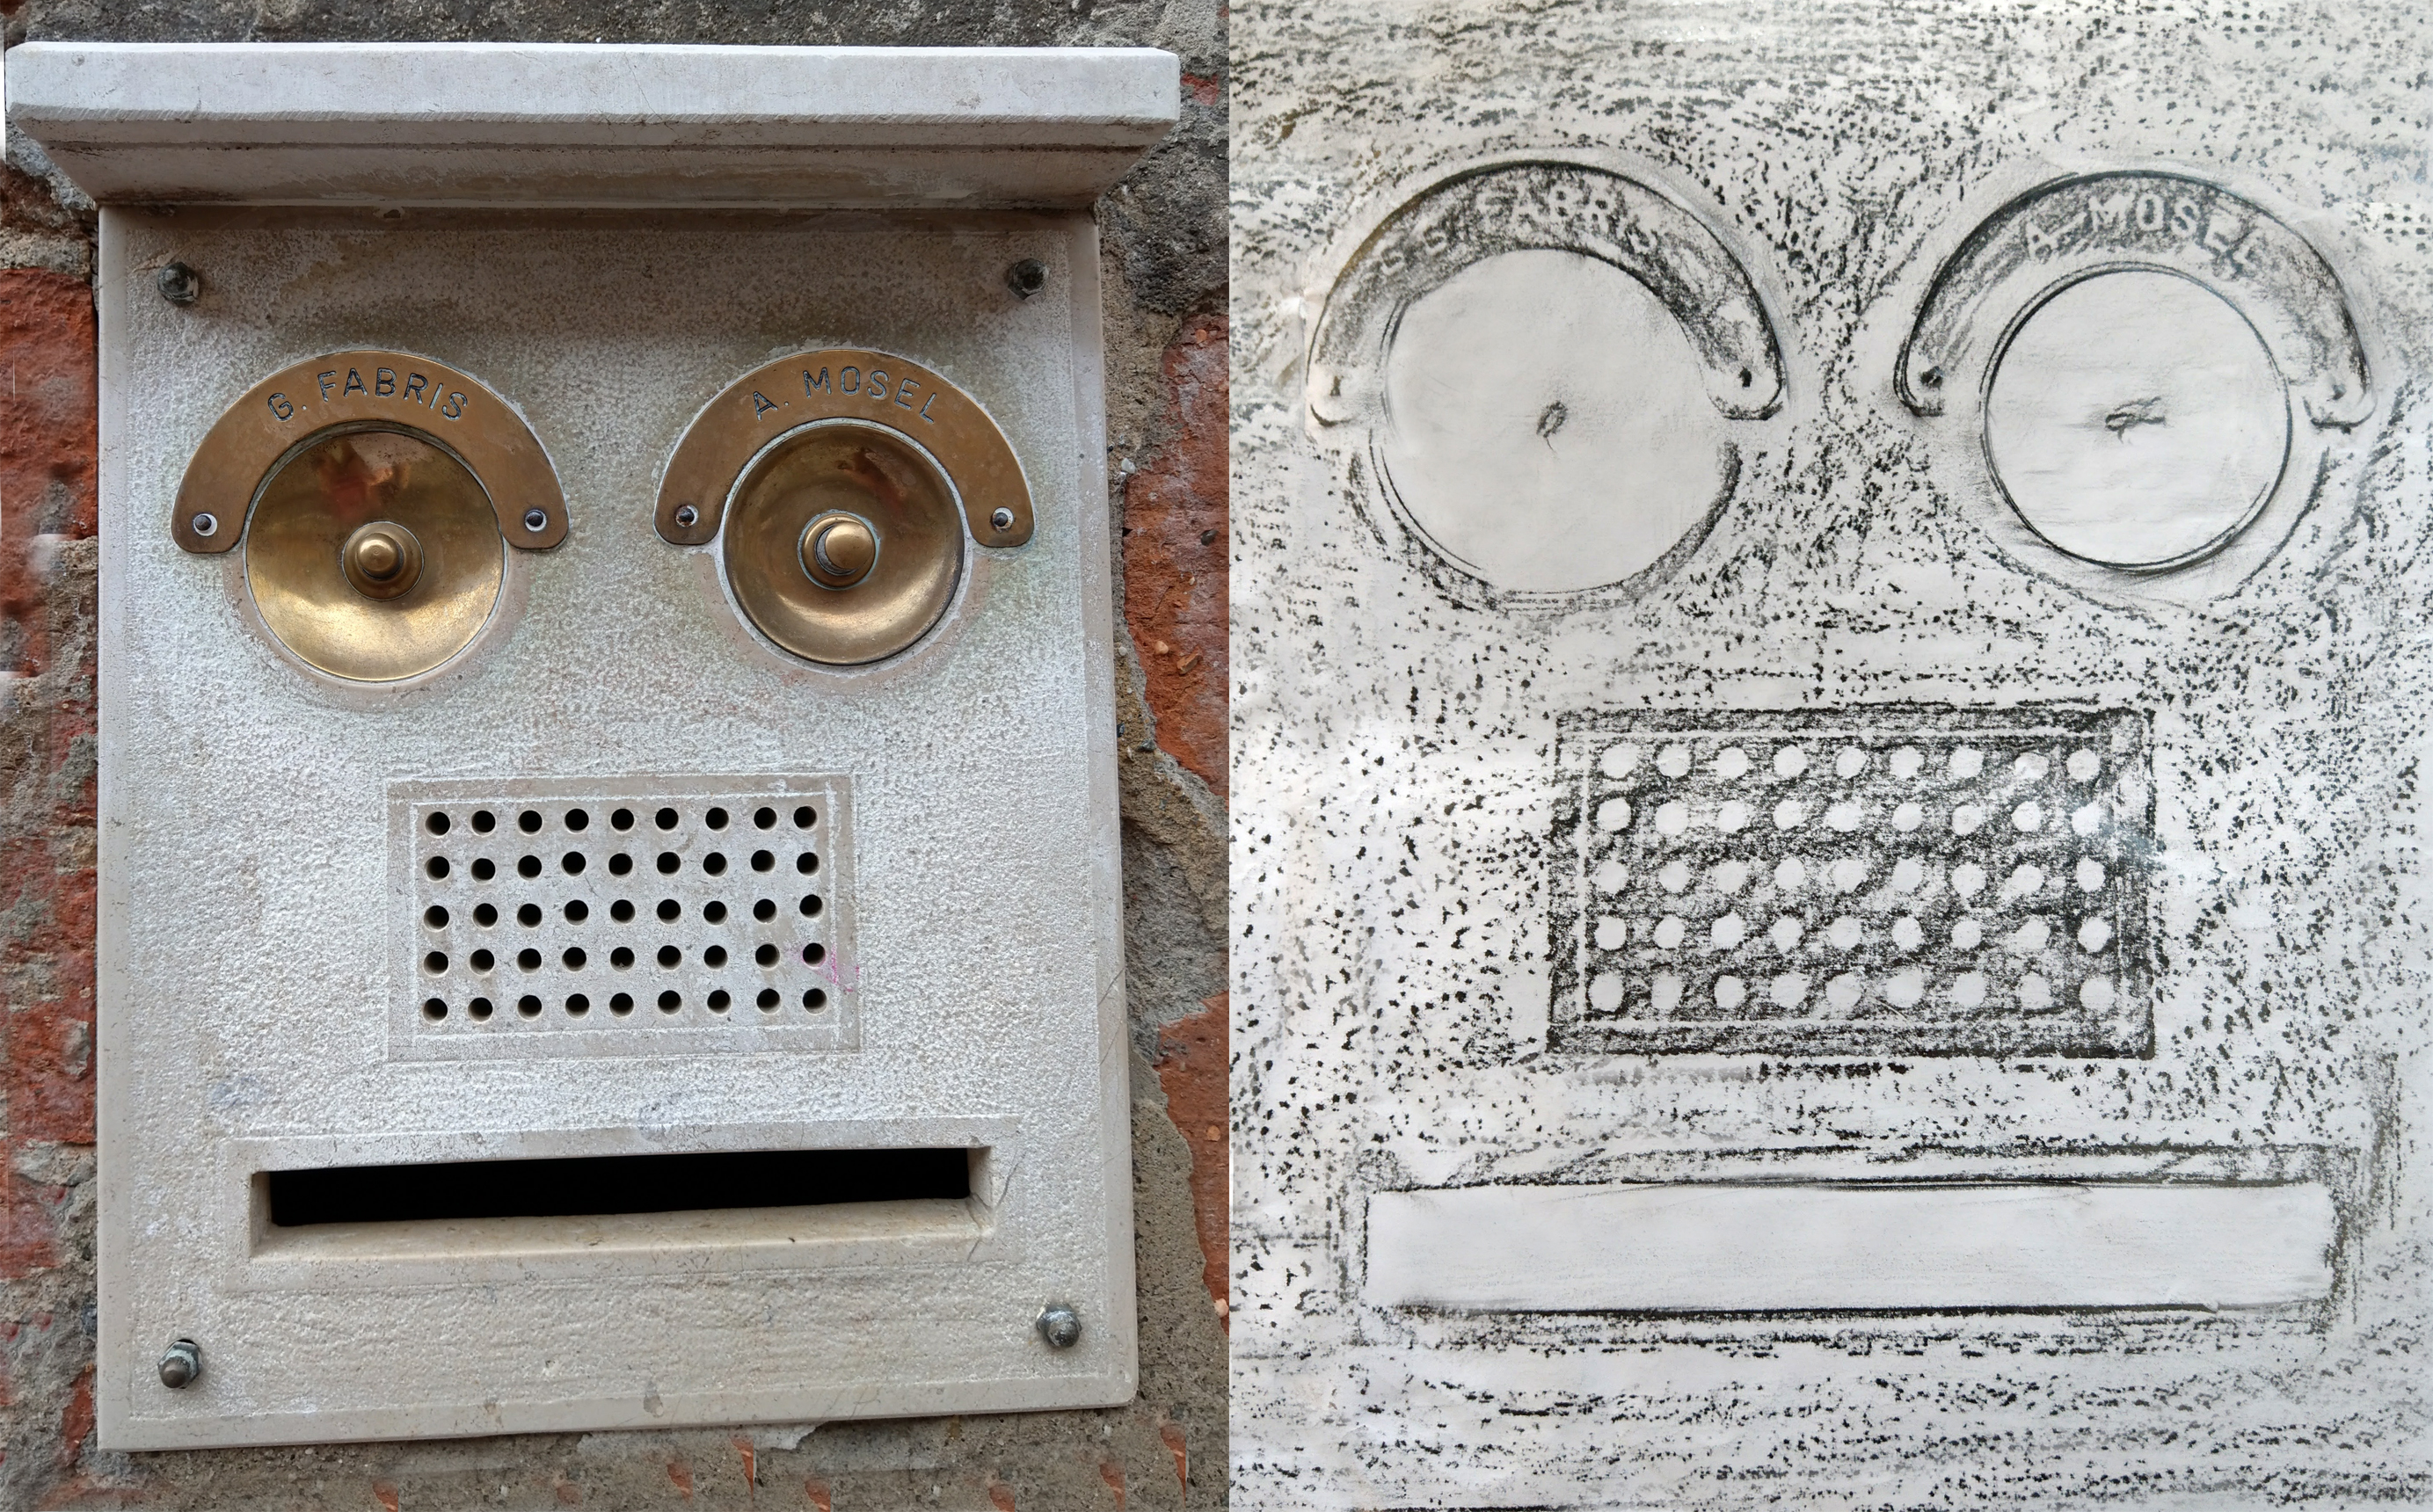 A typical Venetian bell intercom system.